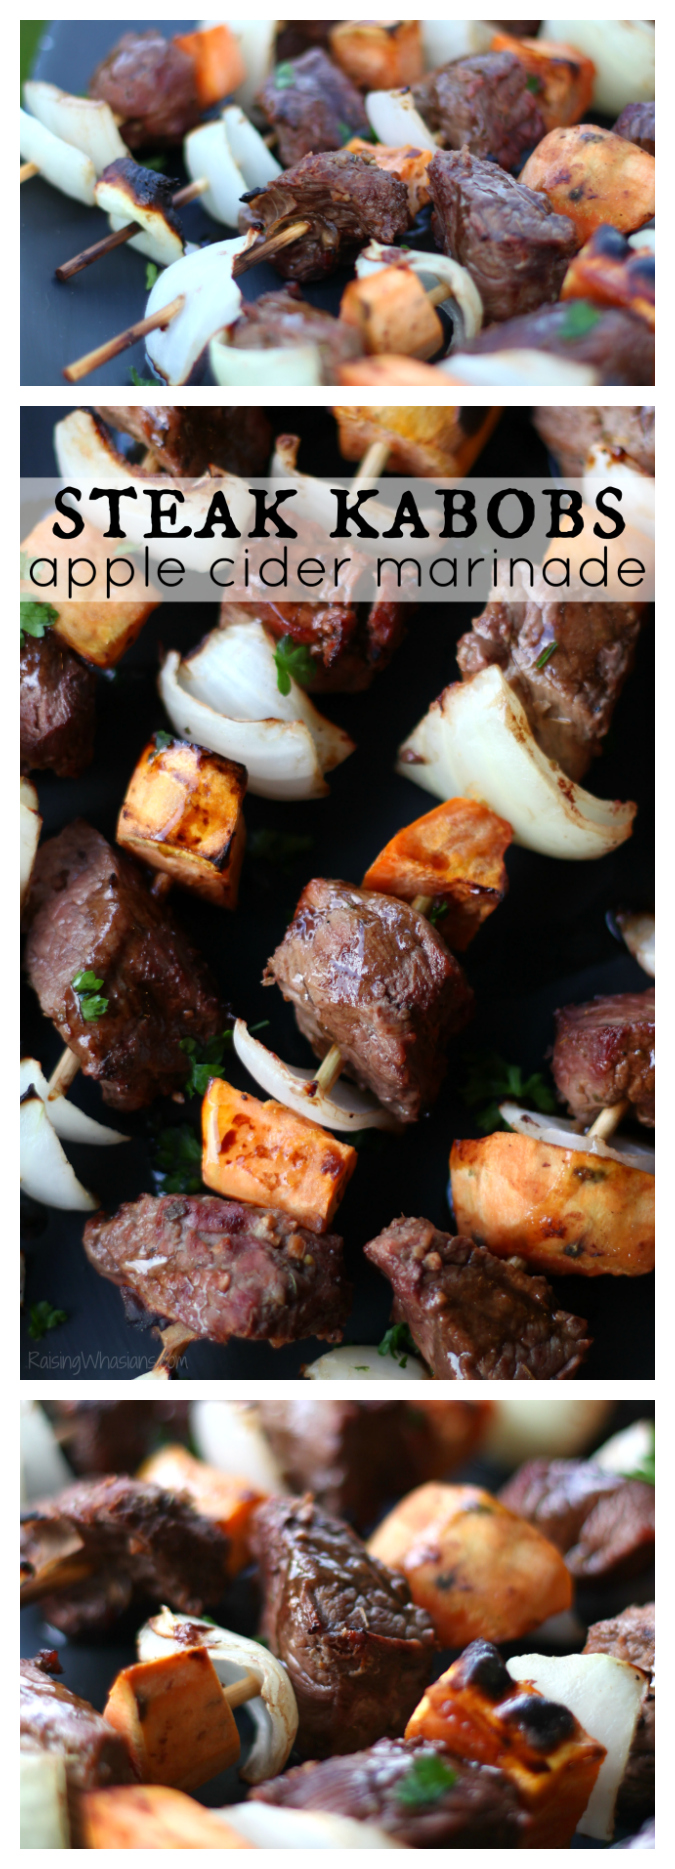 Fall steak kabobs pinterest